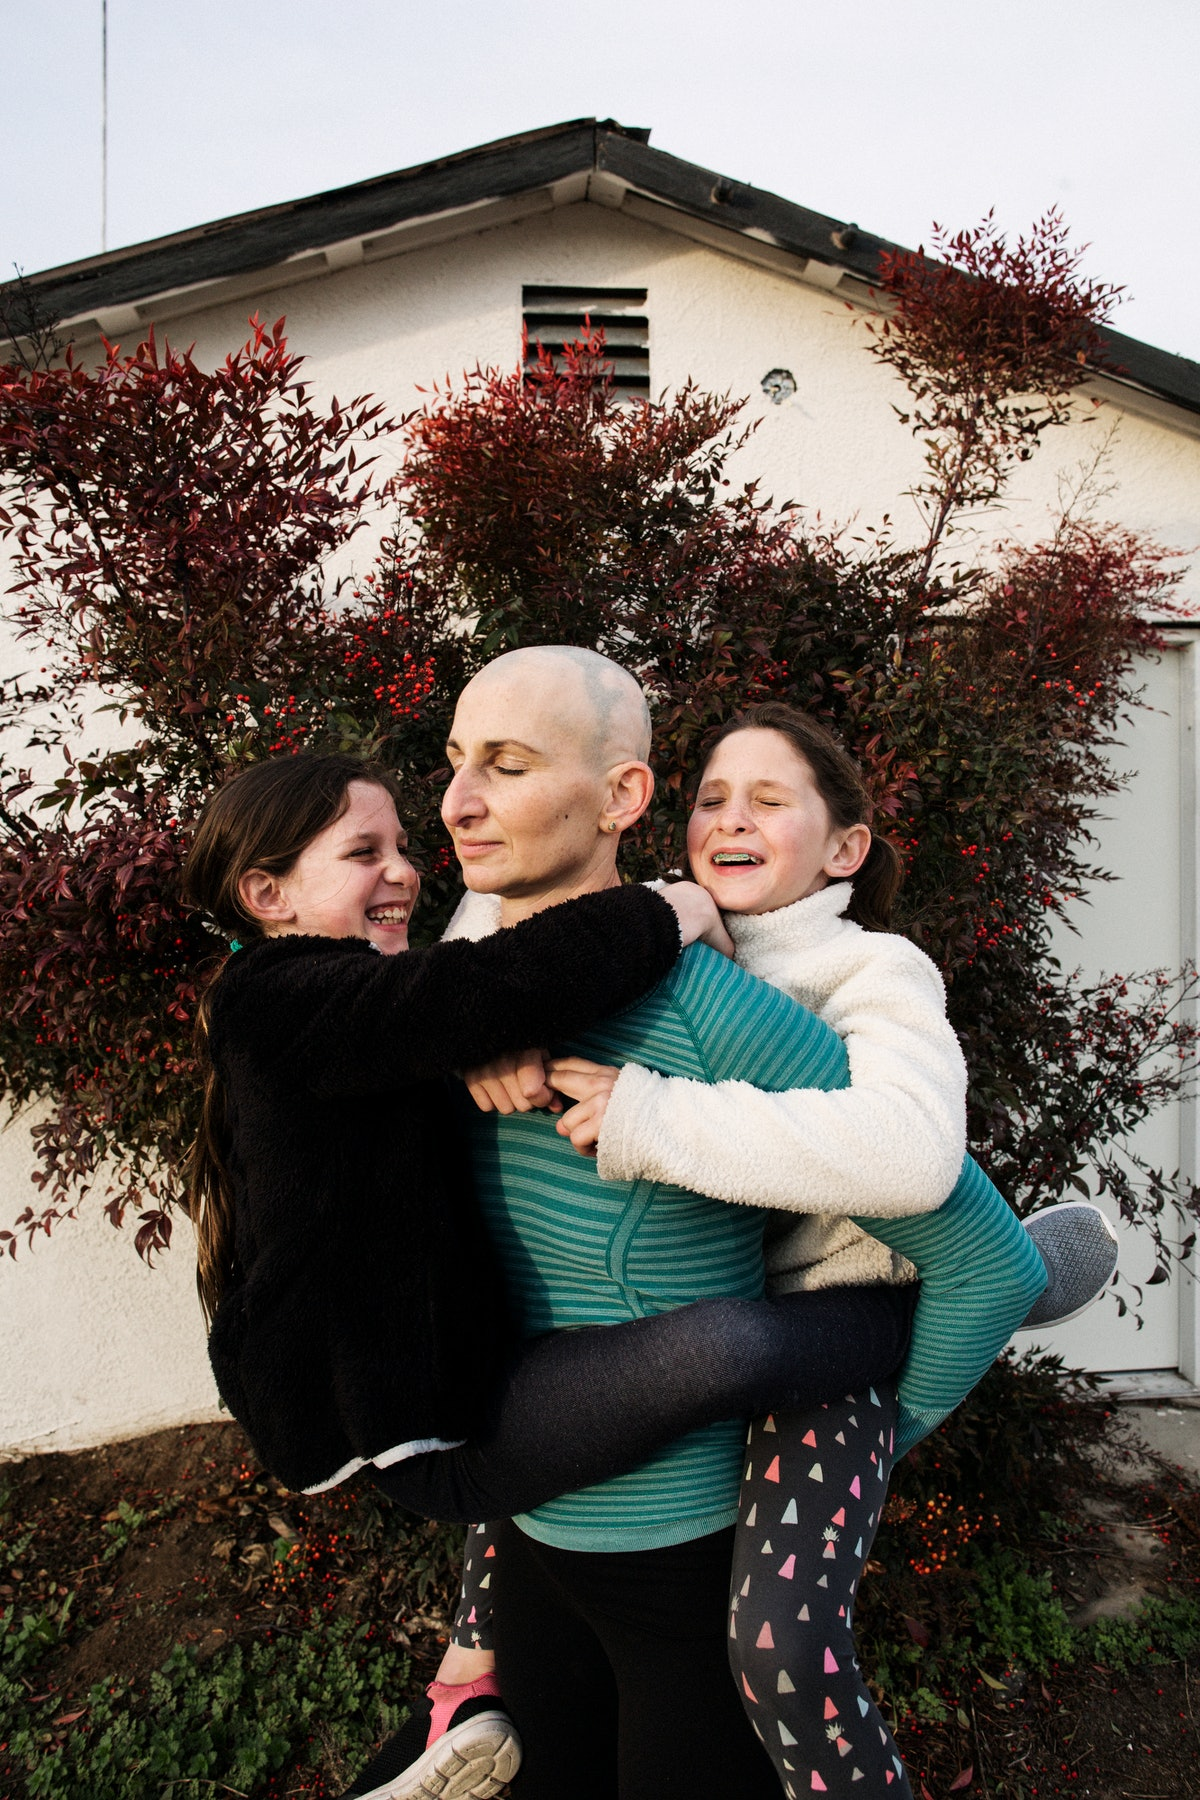 a portrait of a mother with her twin daughters